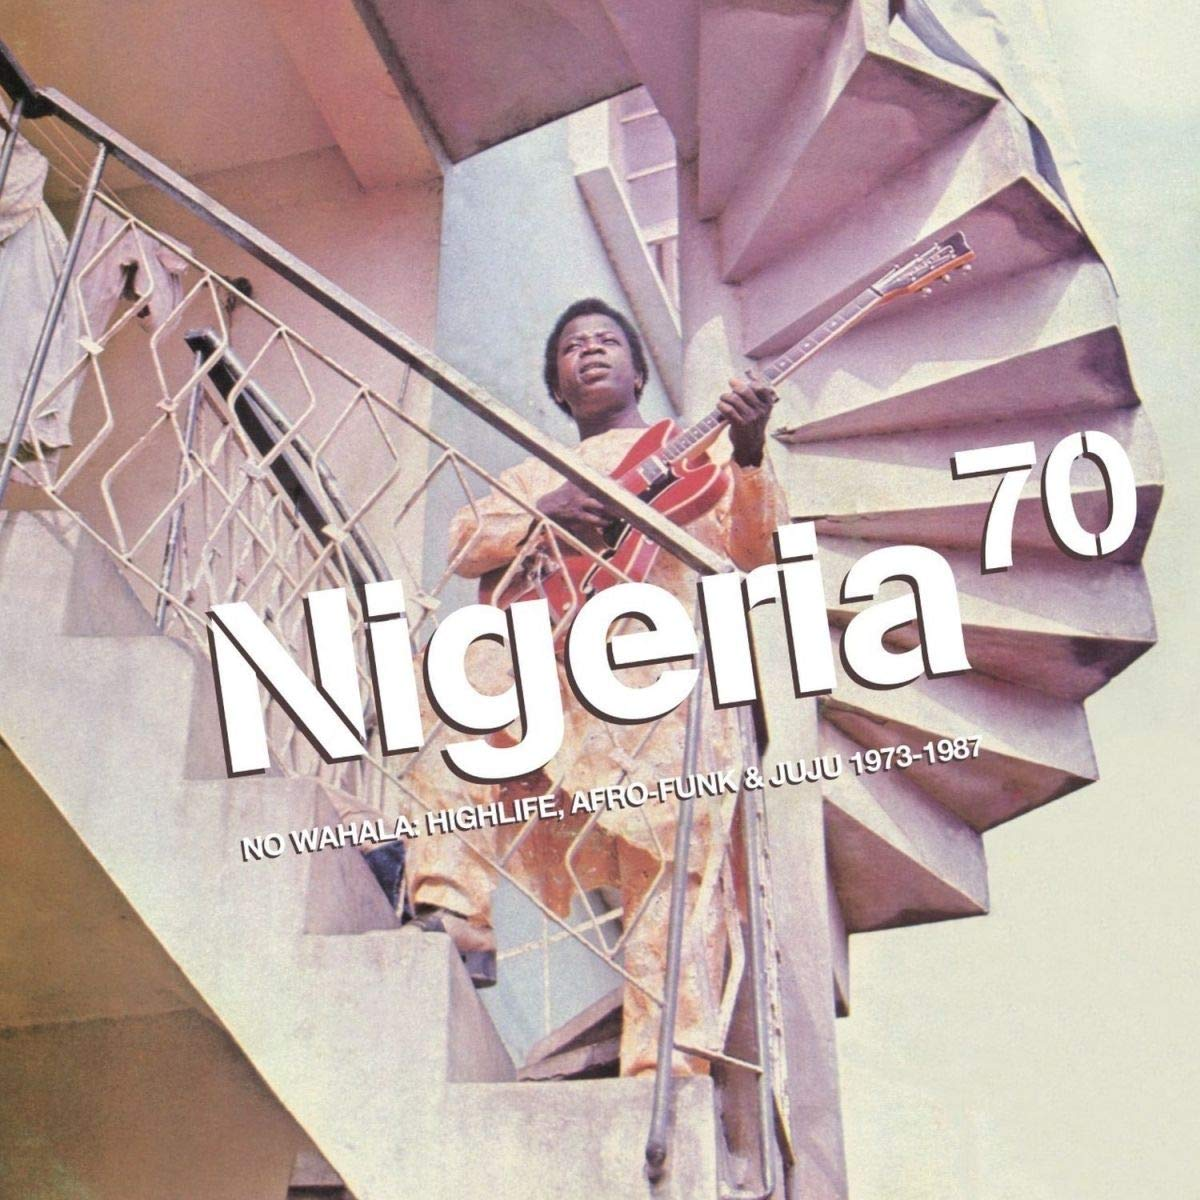 Buy V.A - Nigeria 70: No Wahala: Highlife, Afro-Funk & Juju 1973-1987 New or Used via Amazon